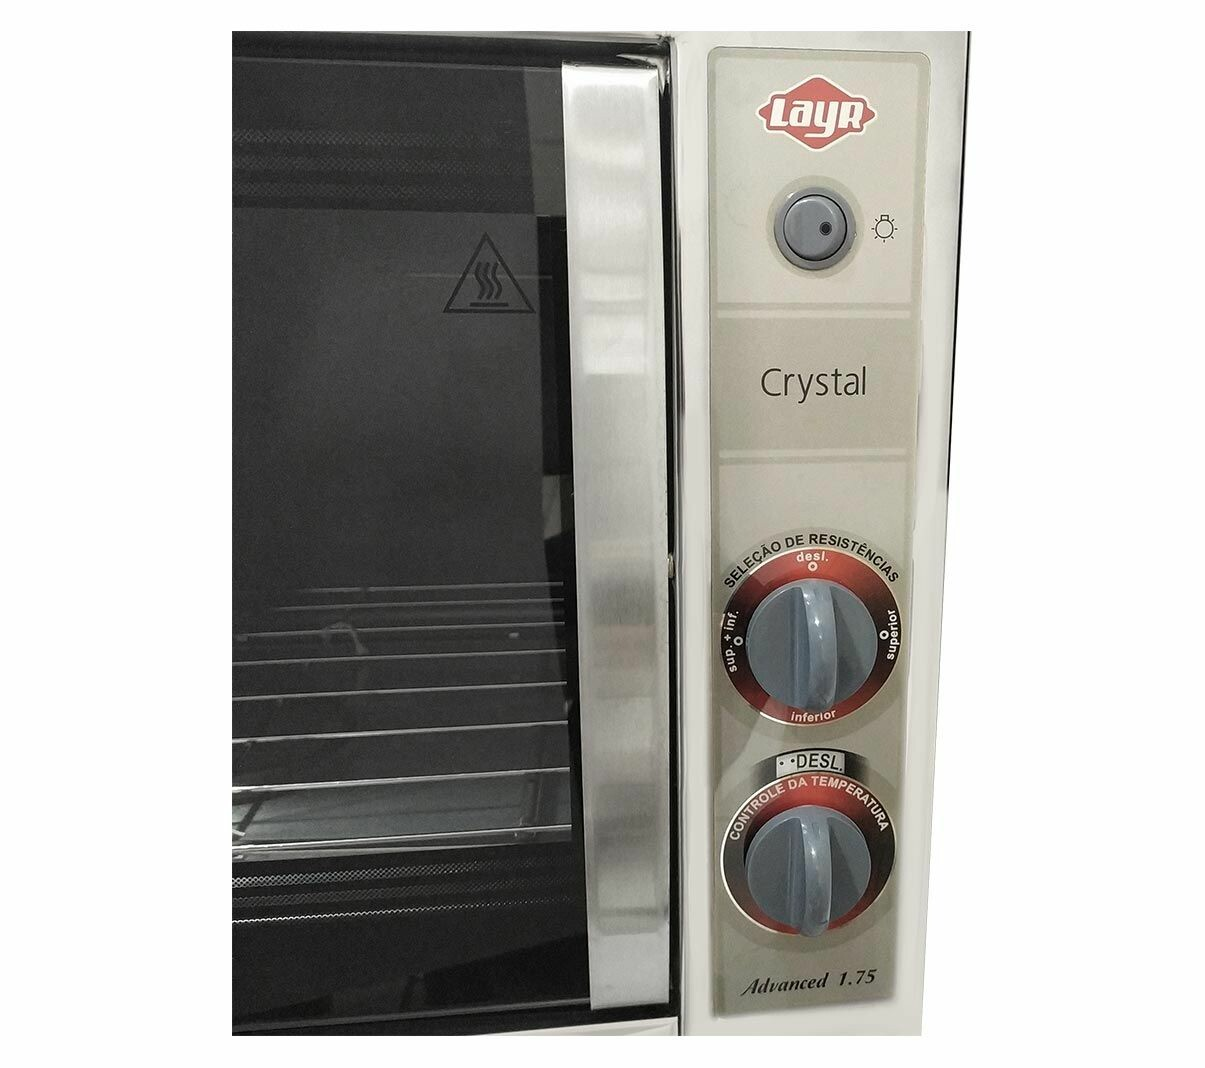 FORNO ELÉTRICO CRYSTAL INOX ADVANCED 1750W - LAYR - 110V